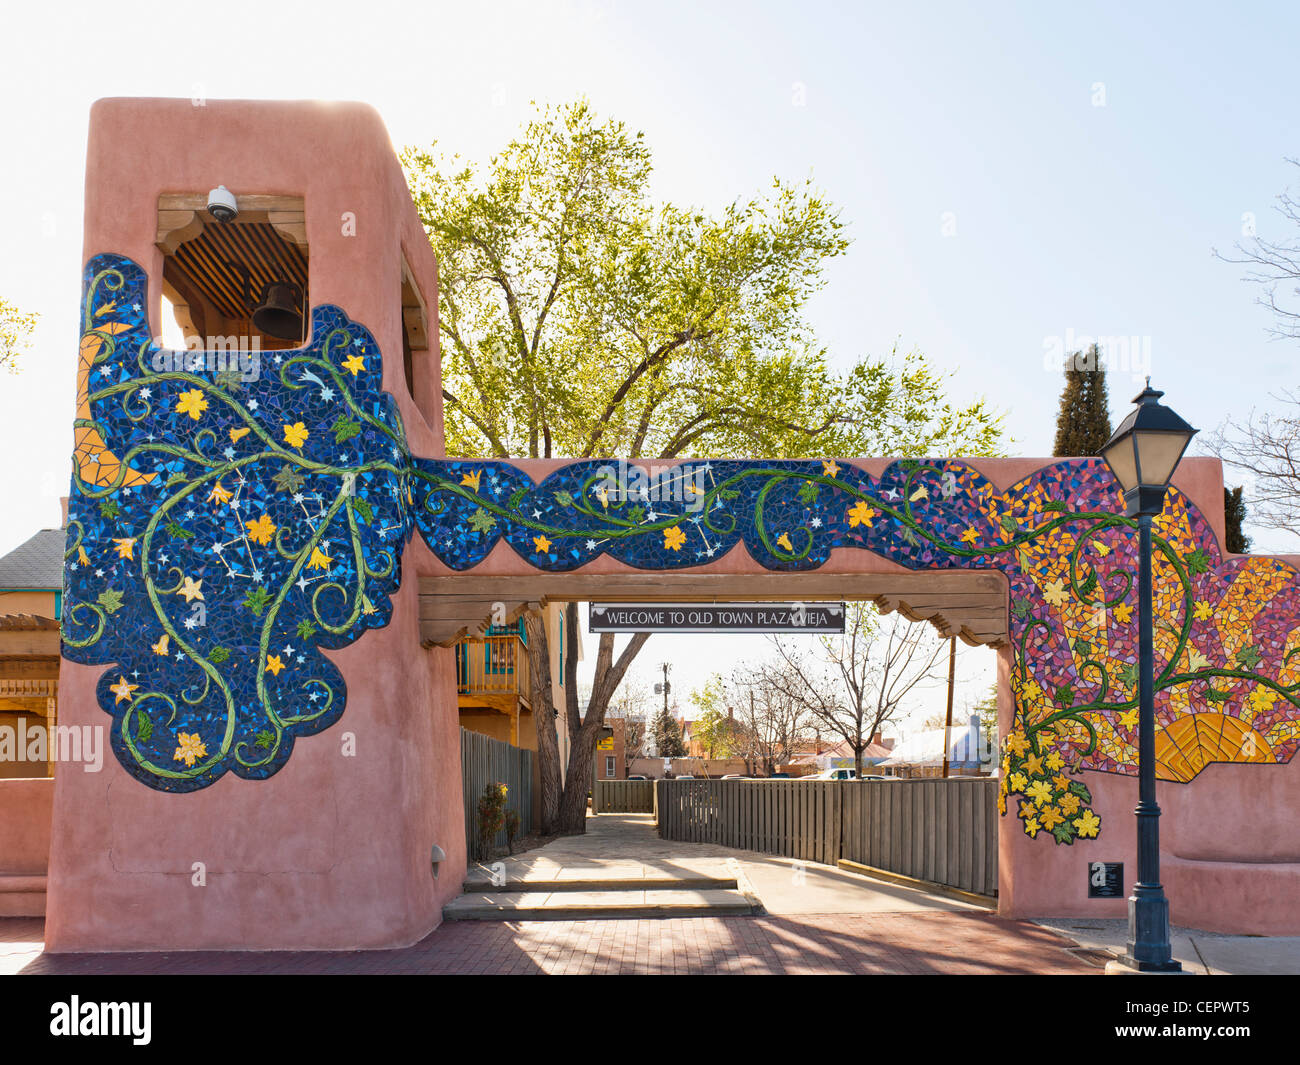 Plaza Vieja entrance, Albuquerque - Stock Image